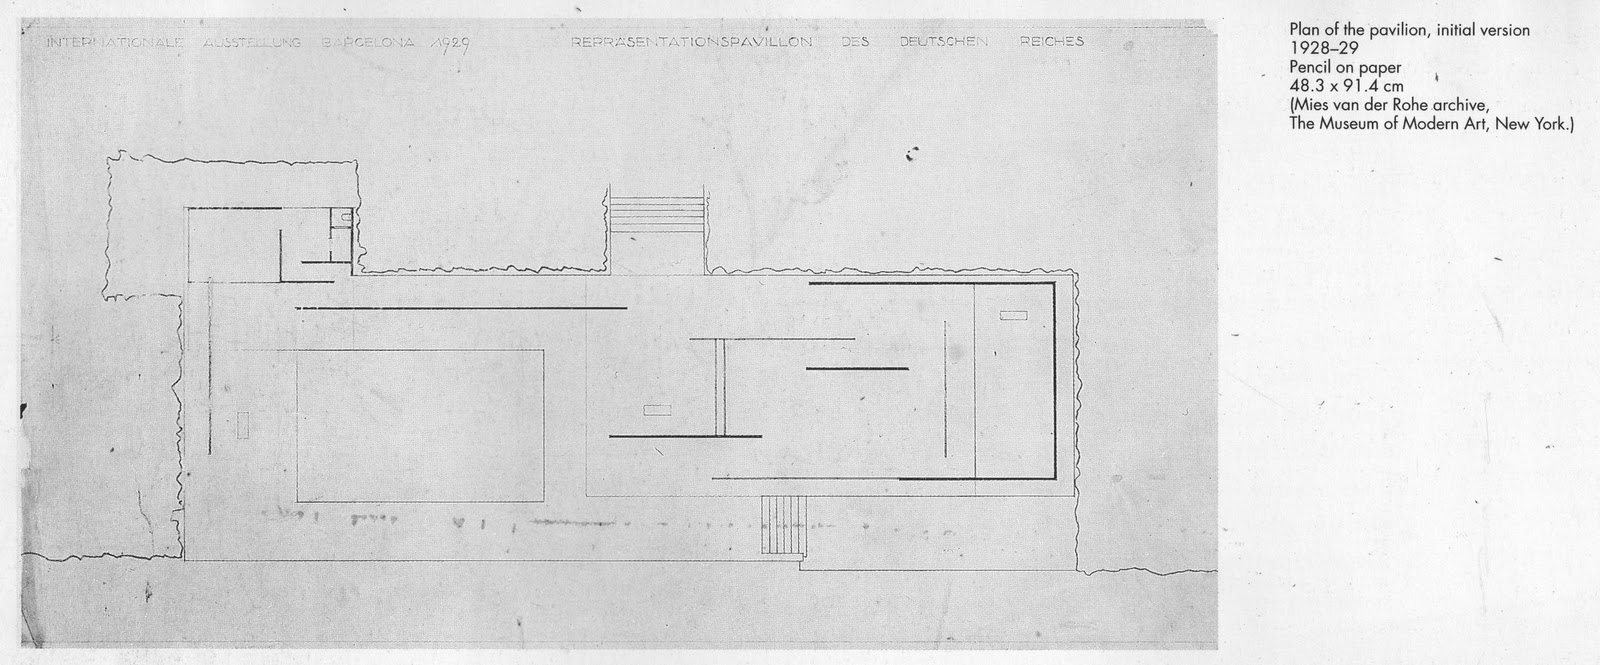 Barcelona pavilion plan - Images Are From The Book Mies Van Der Rohe Barcelona Pavilion